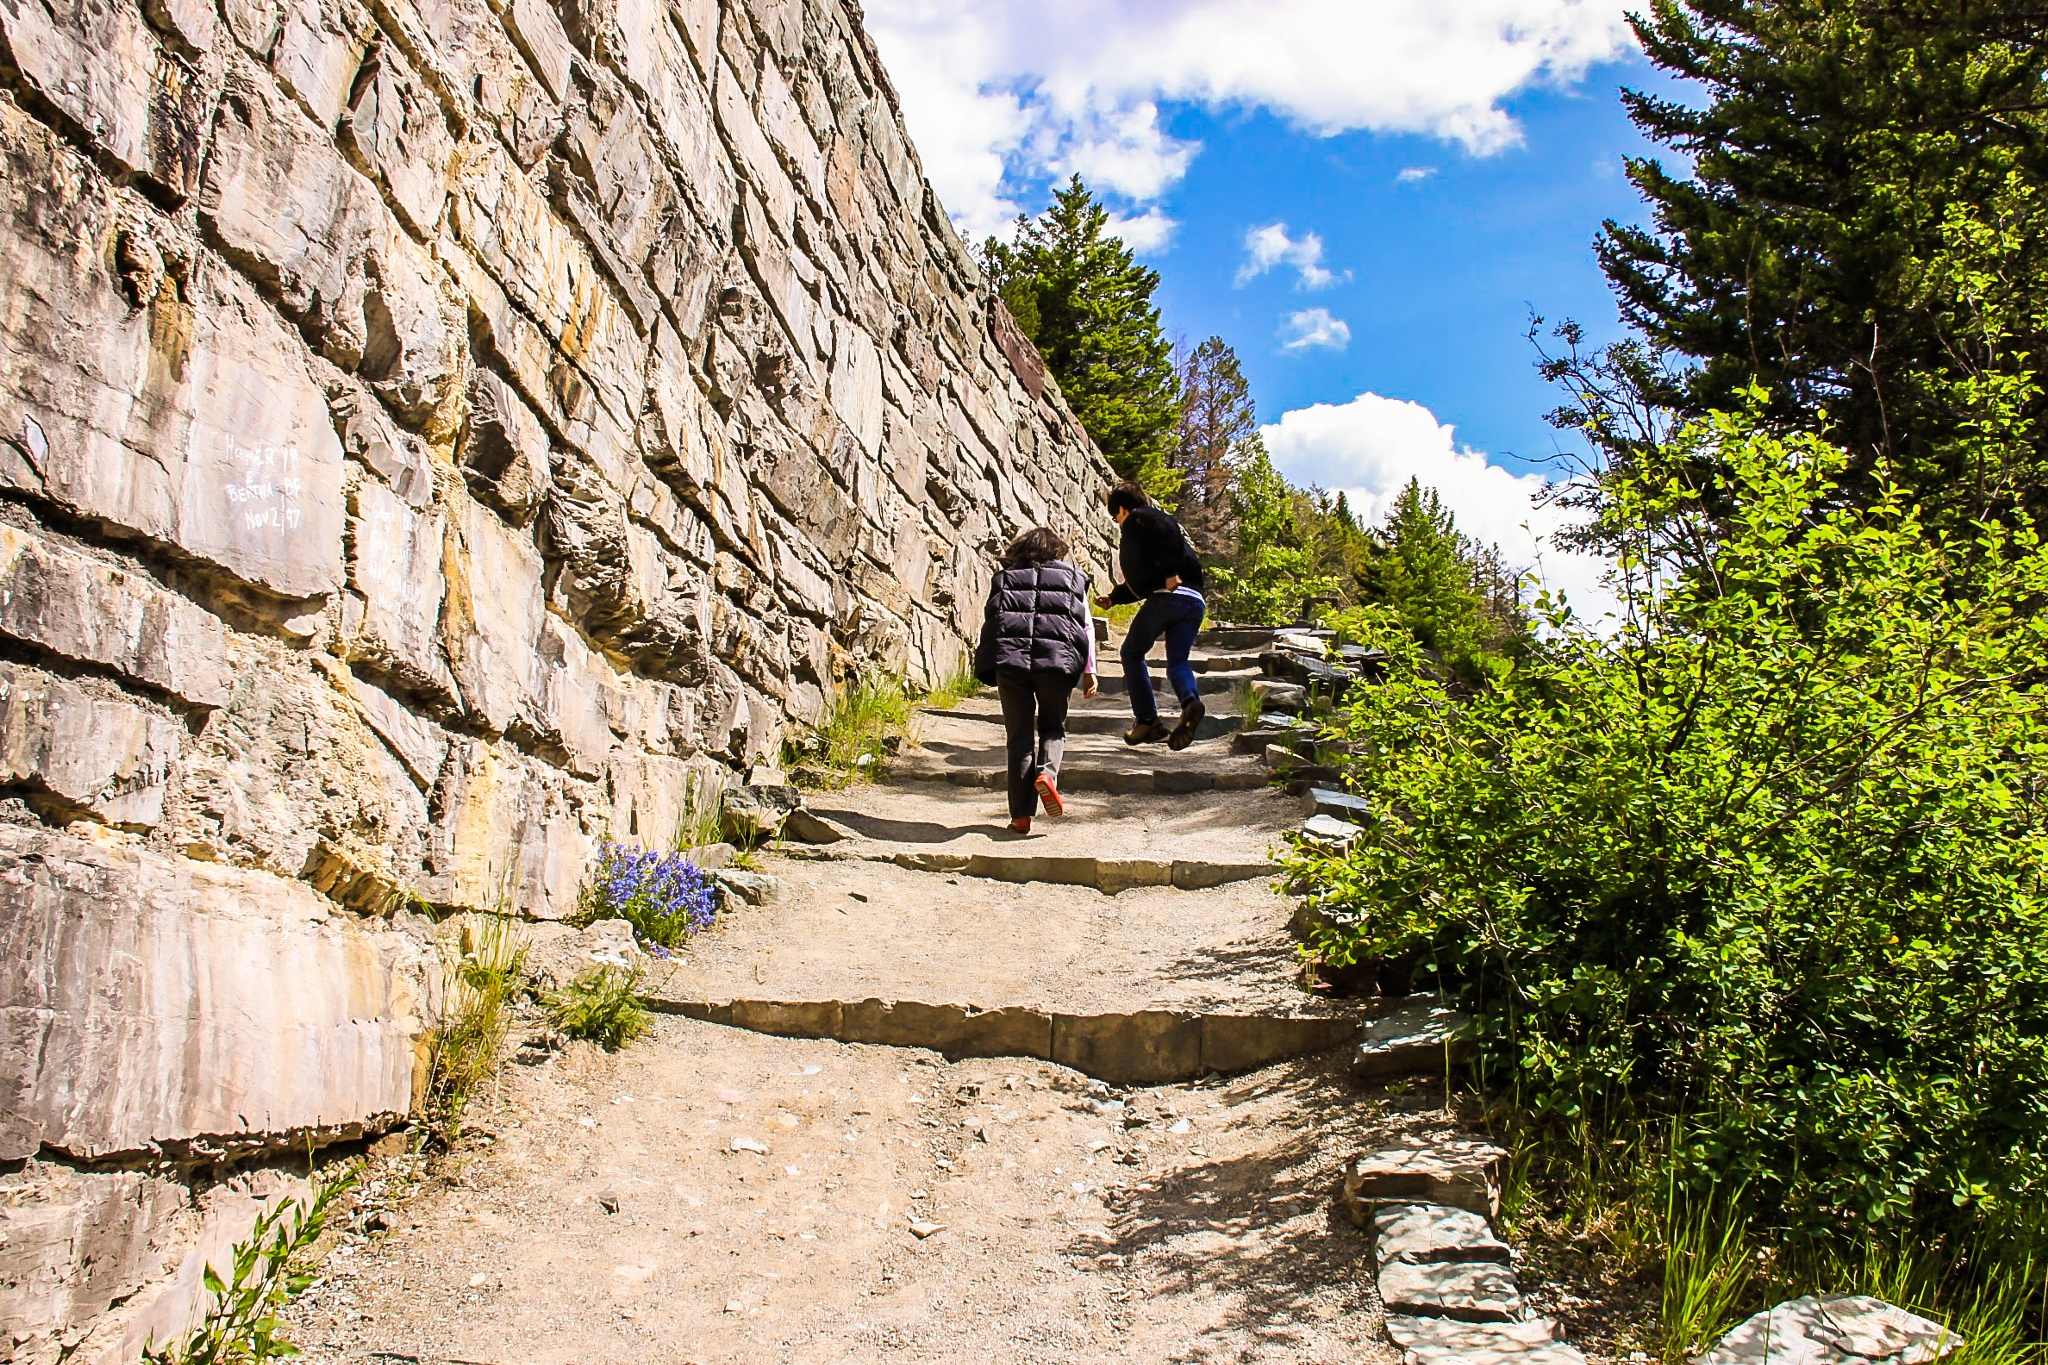 Glacier national Park skipping stairs by BillBarnes